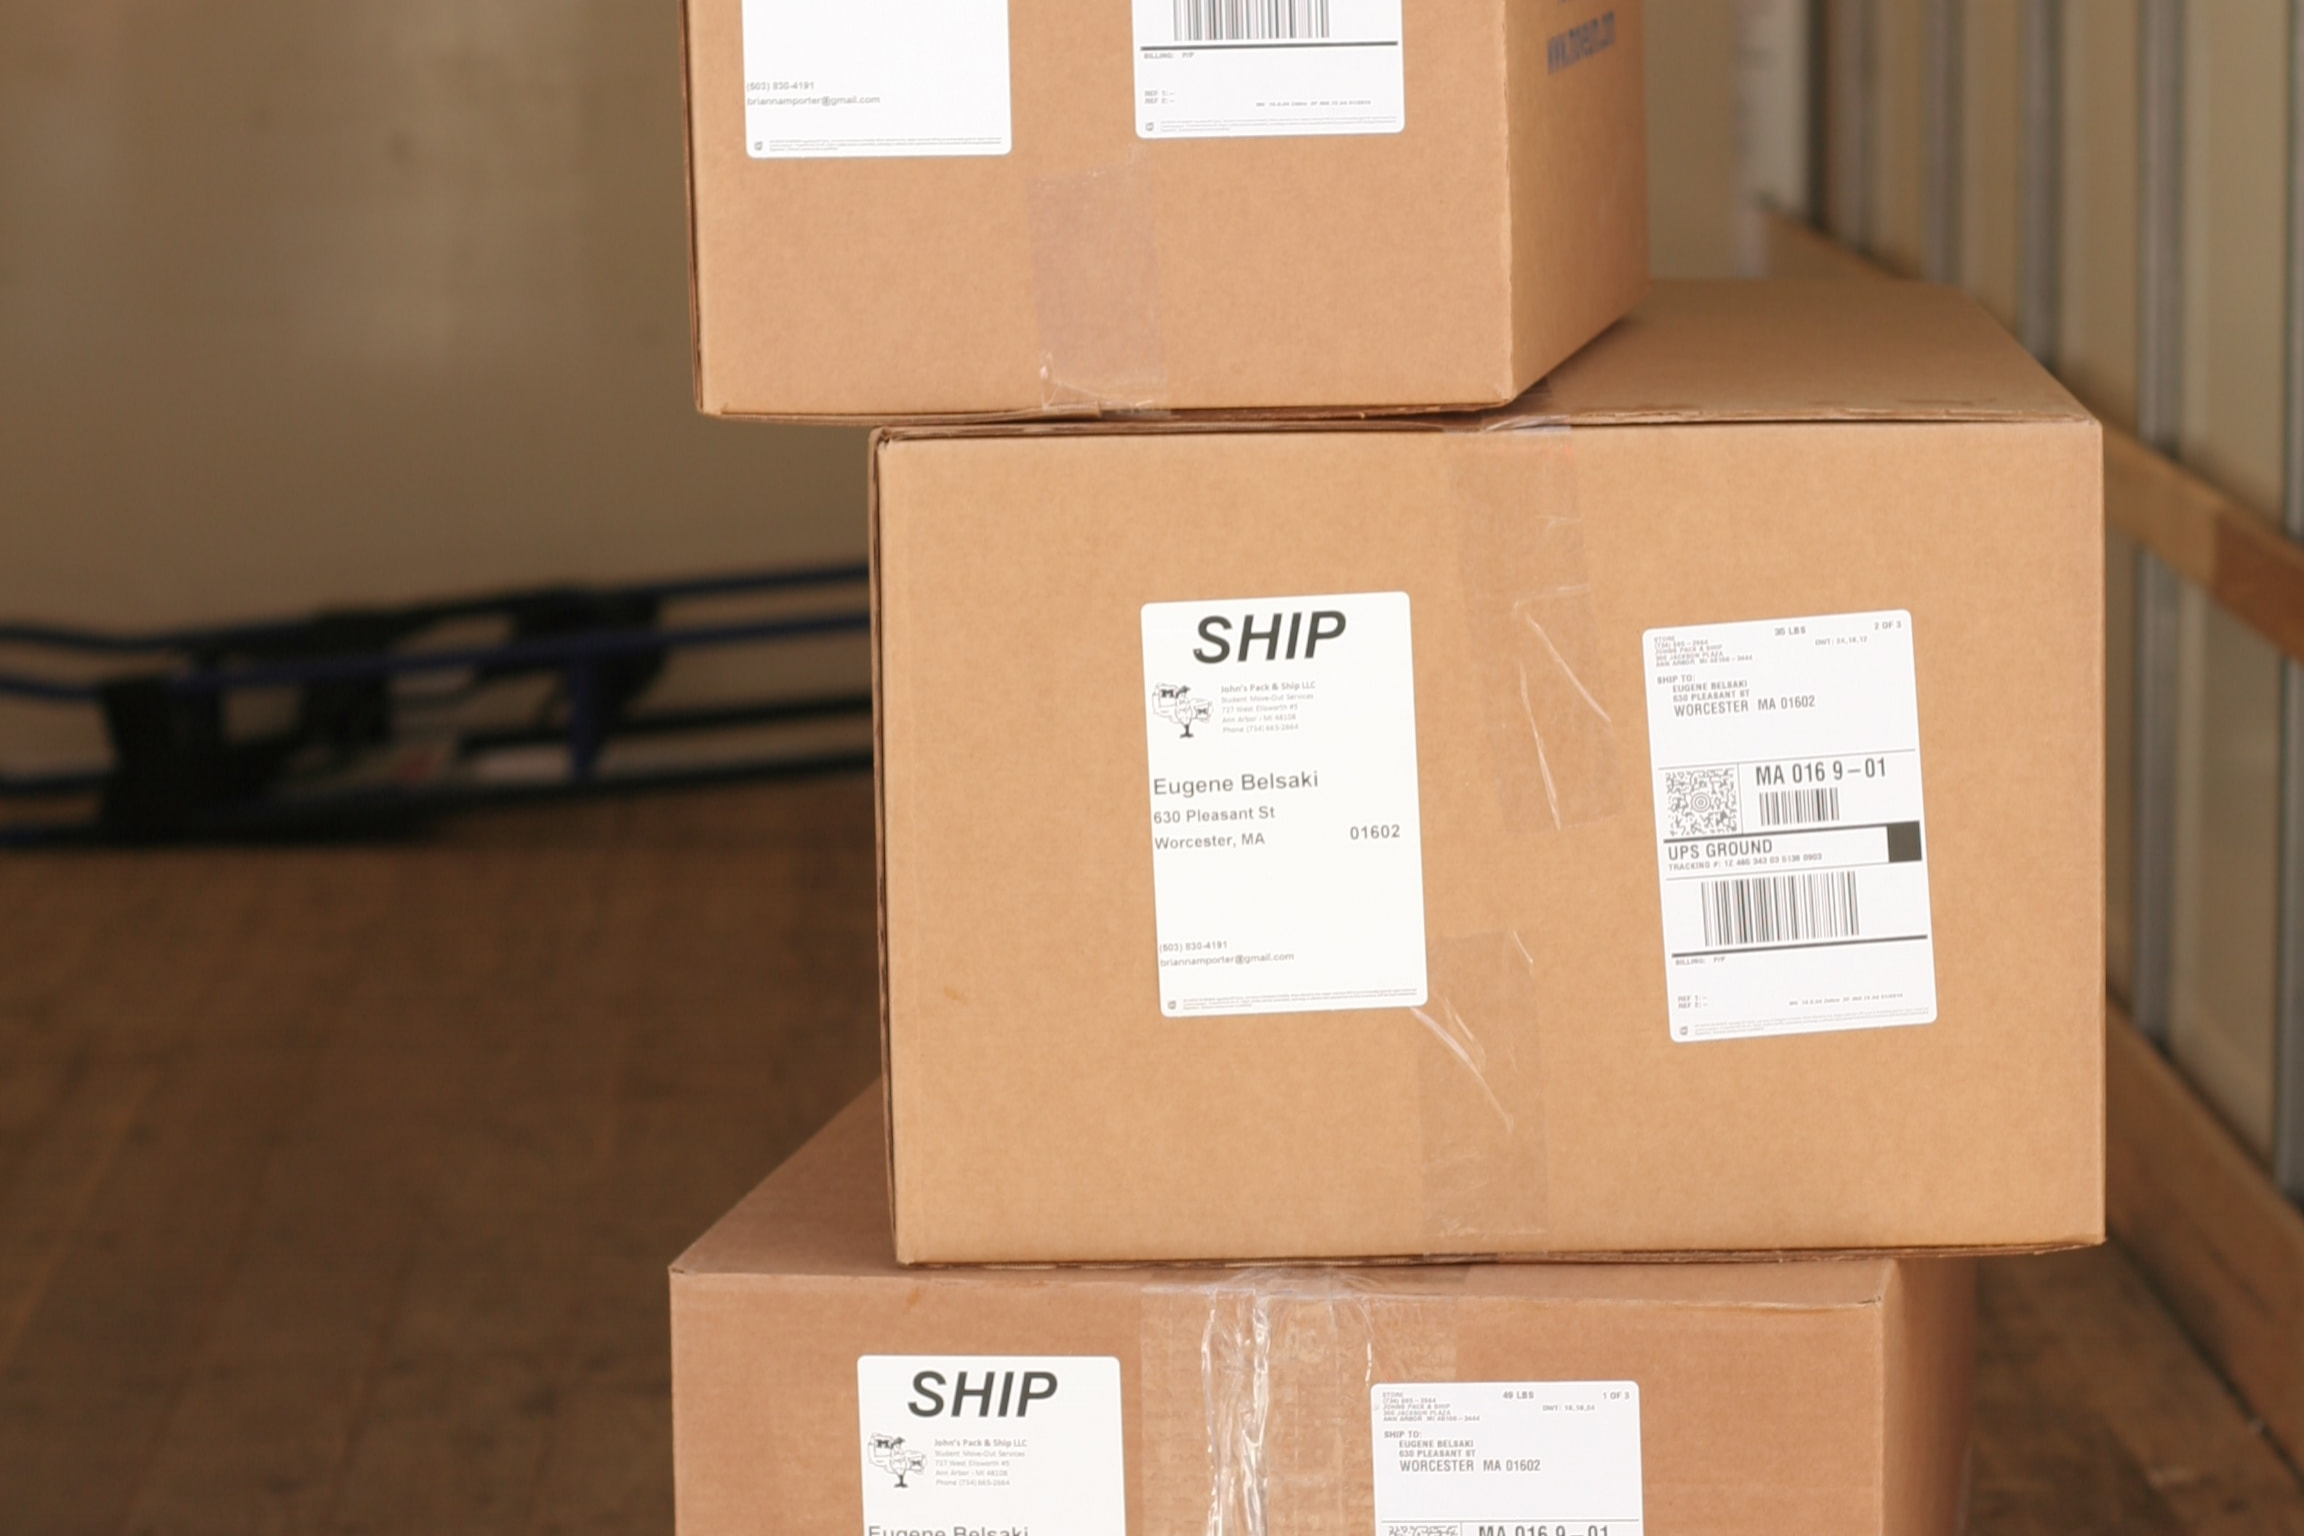 Shipping - We are a Top 100 UPS Authorized Shipping Outlet.Most deliveries arrive within 3 or 4 business days.